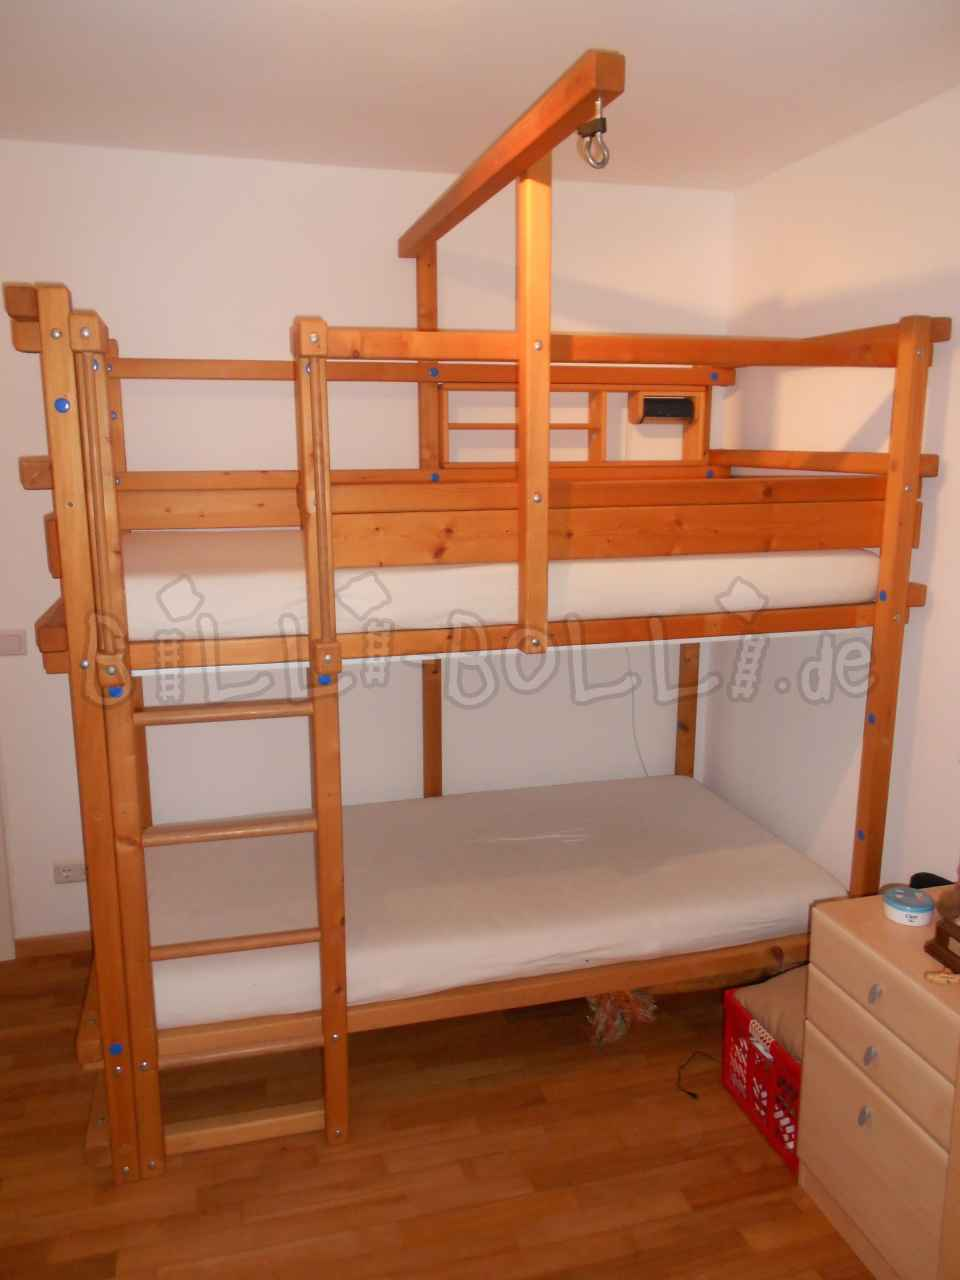 Bunk bed 100 x 200 cm (second hand loft bed)